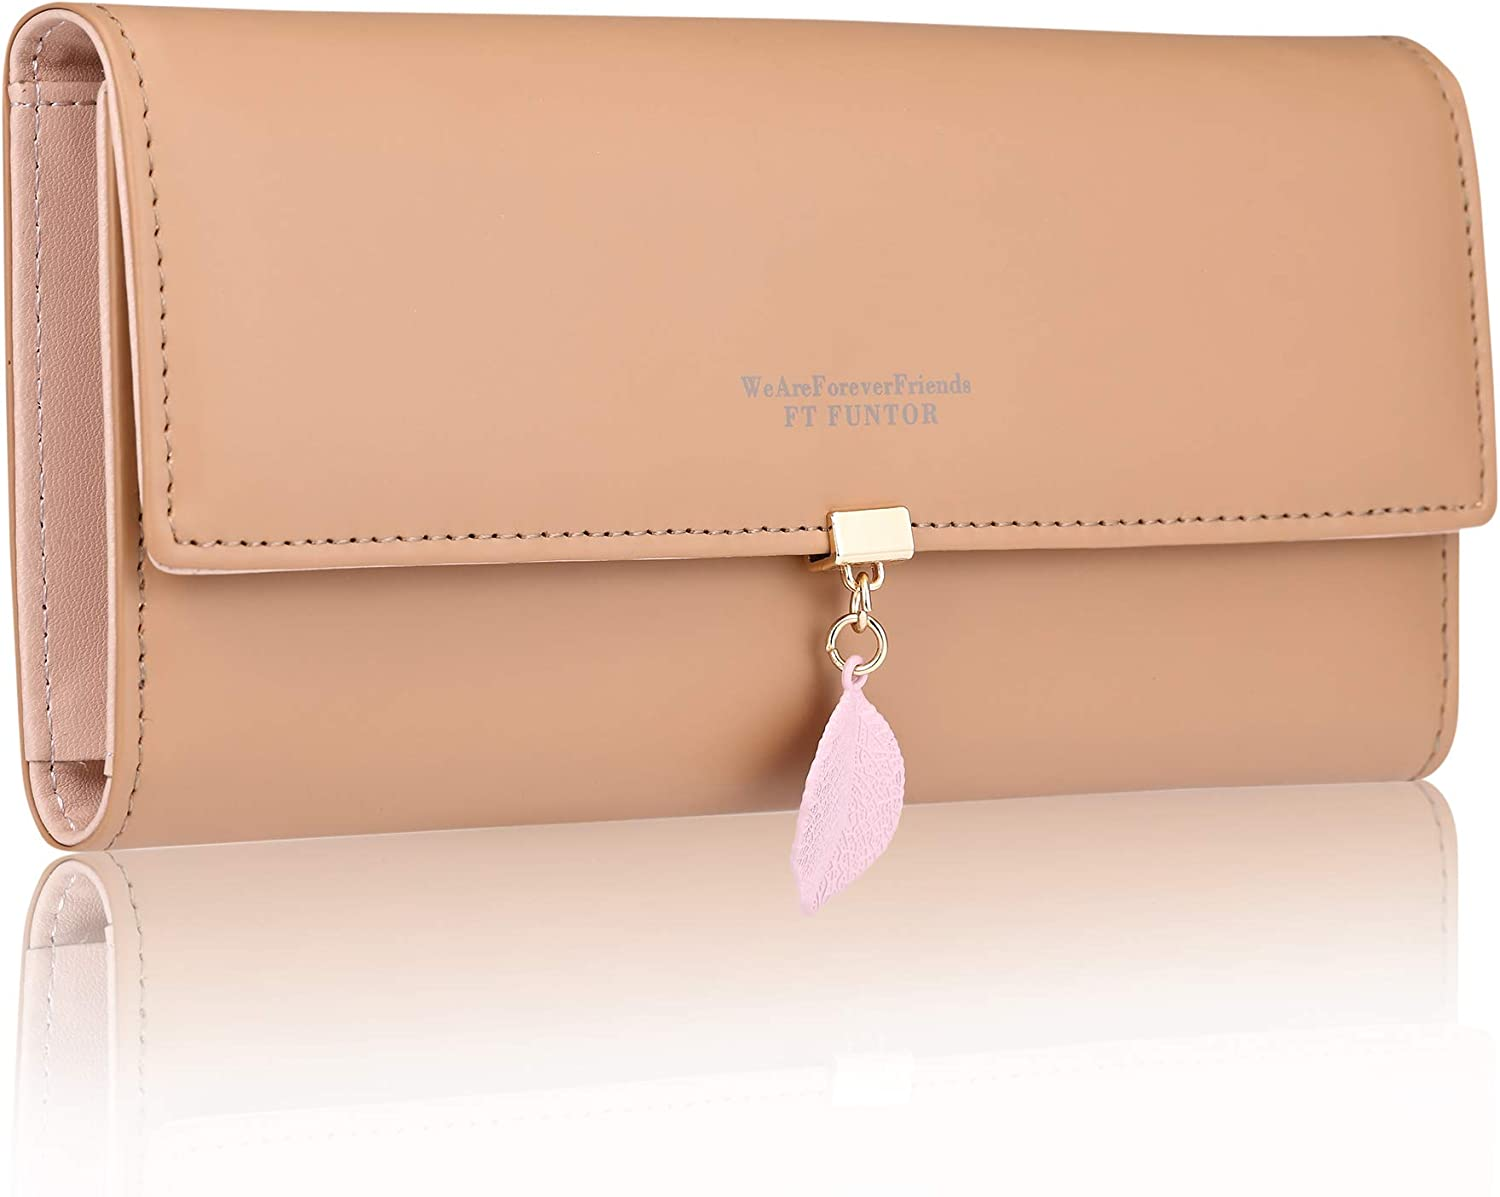 FT Funtor RFID Wallets for Women,Ladies Wallets with Zipper Pocket Trifold Wallets for Women with Leaf